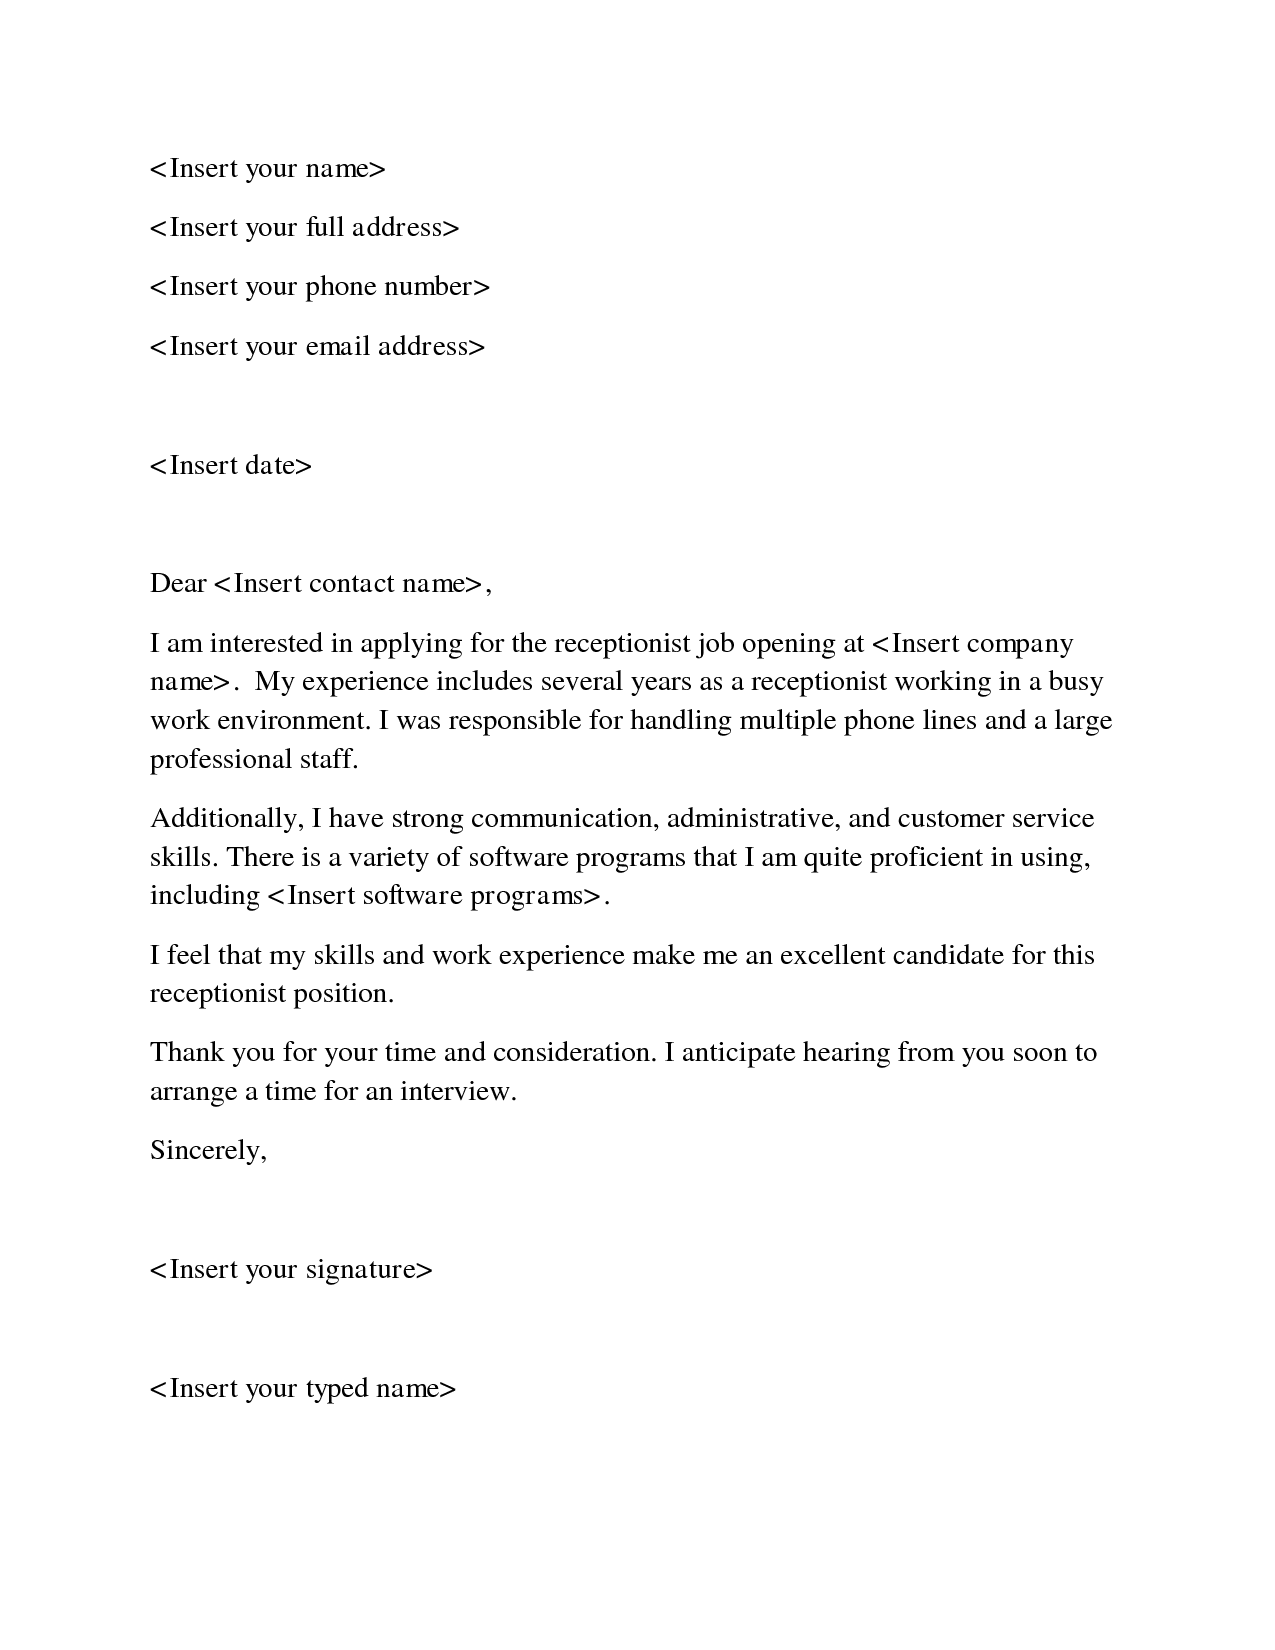 Receptionist Skills Resume Cover Letter Help Receptionist Resume Top Essay Writingcover